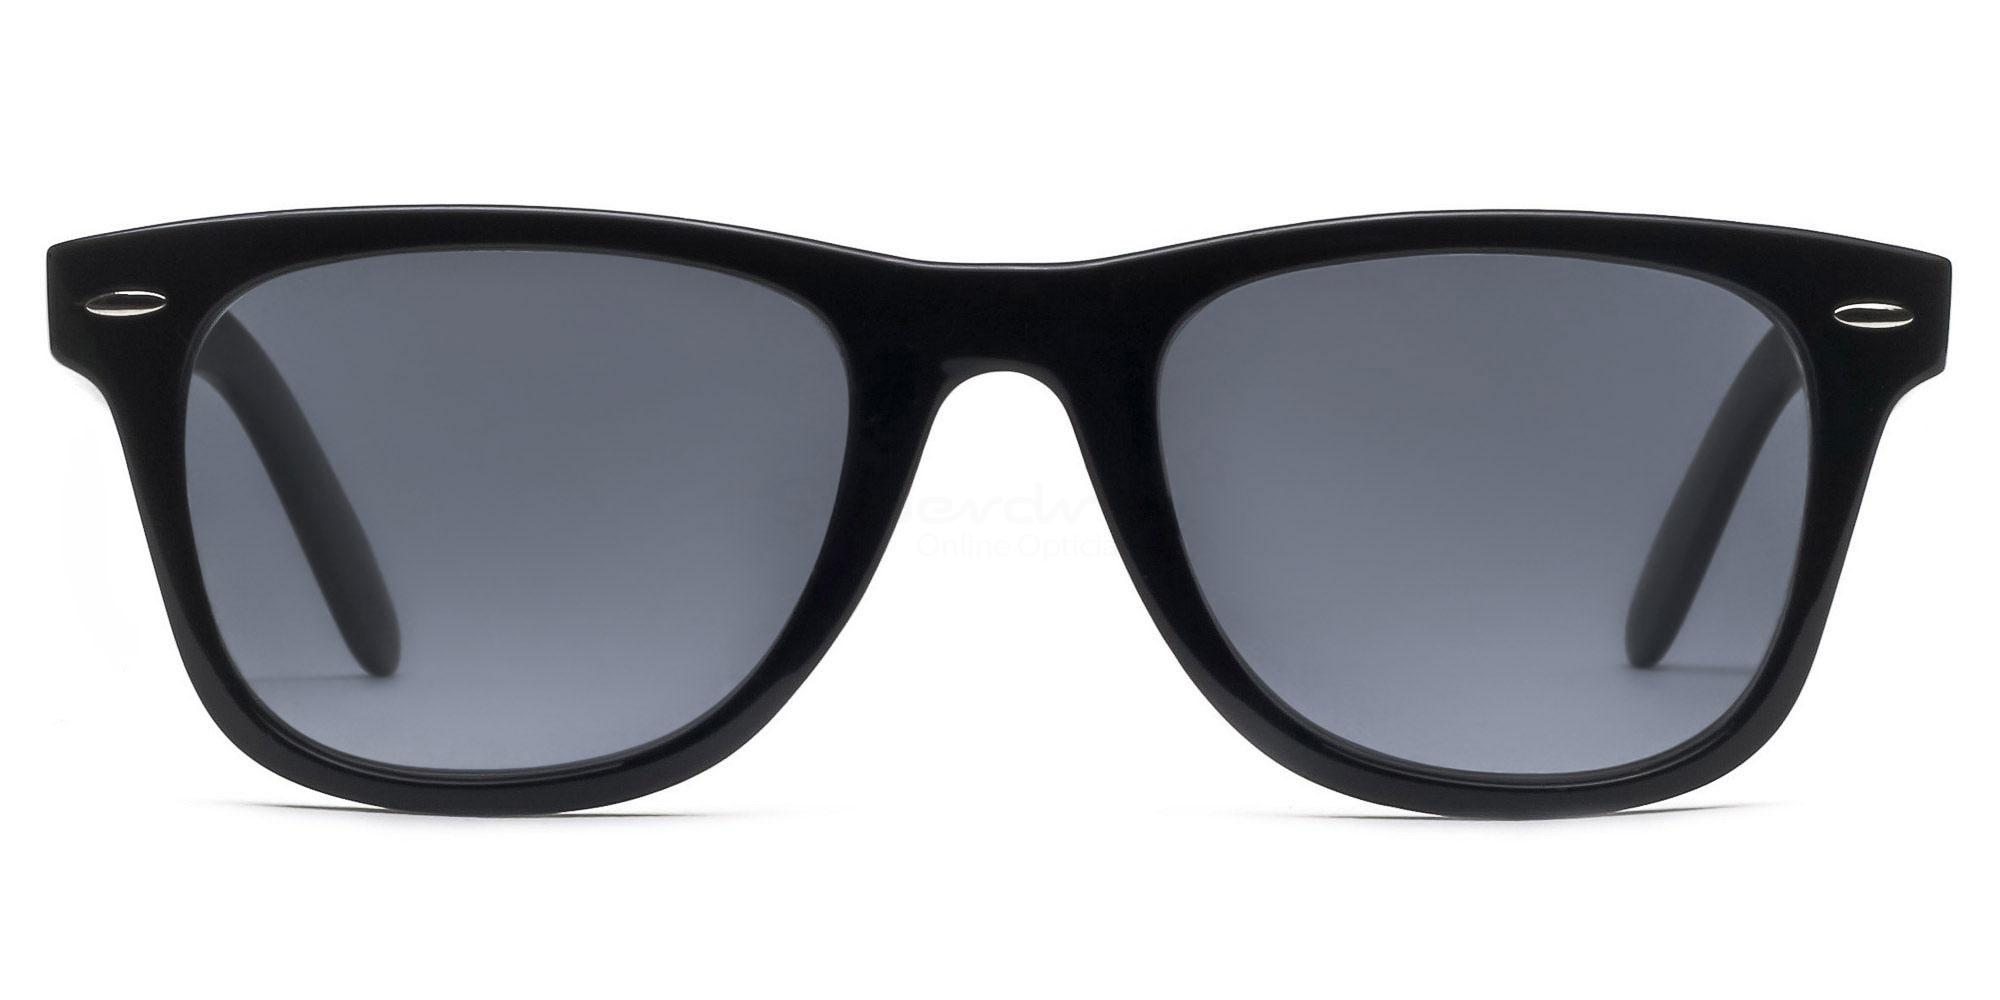 C01 Dark Grey P2429 - Black (Sunglasses) Sunglasses, Indium